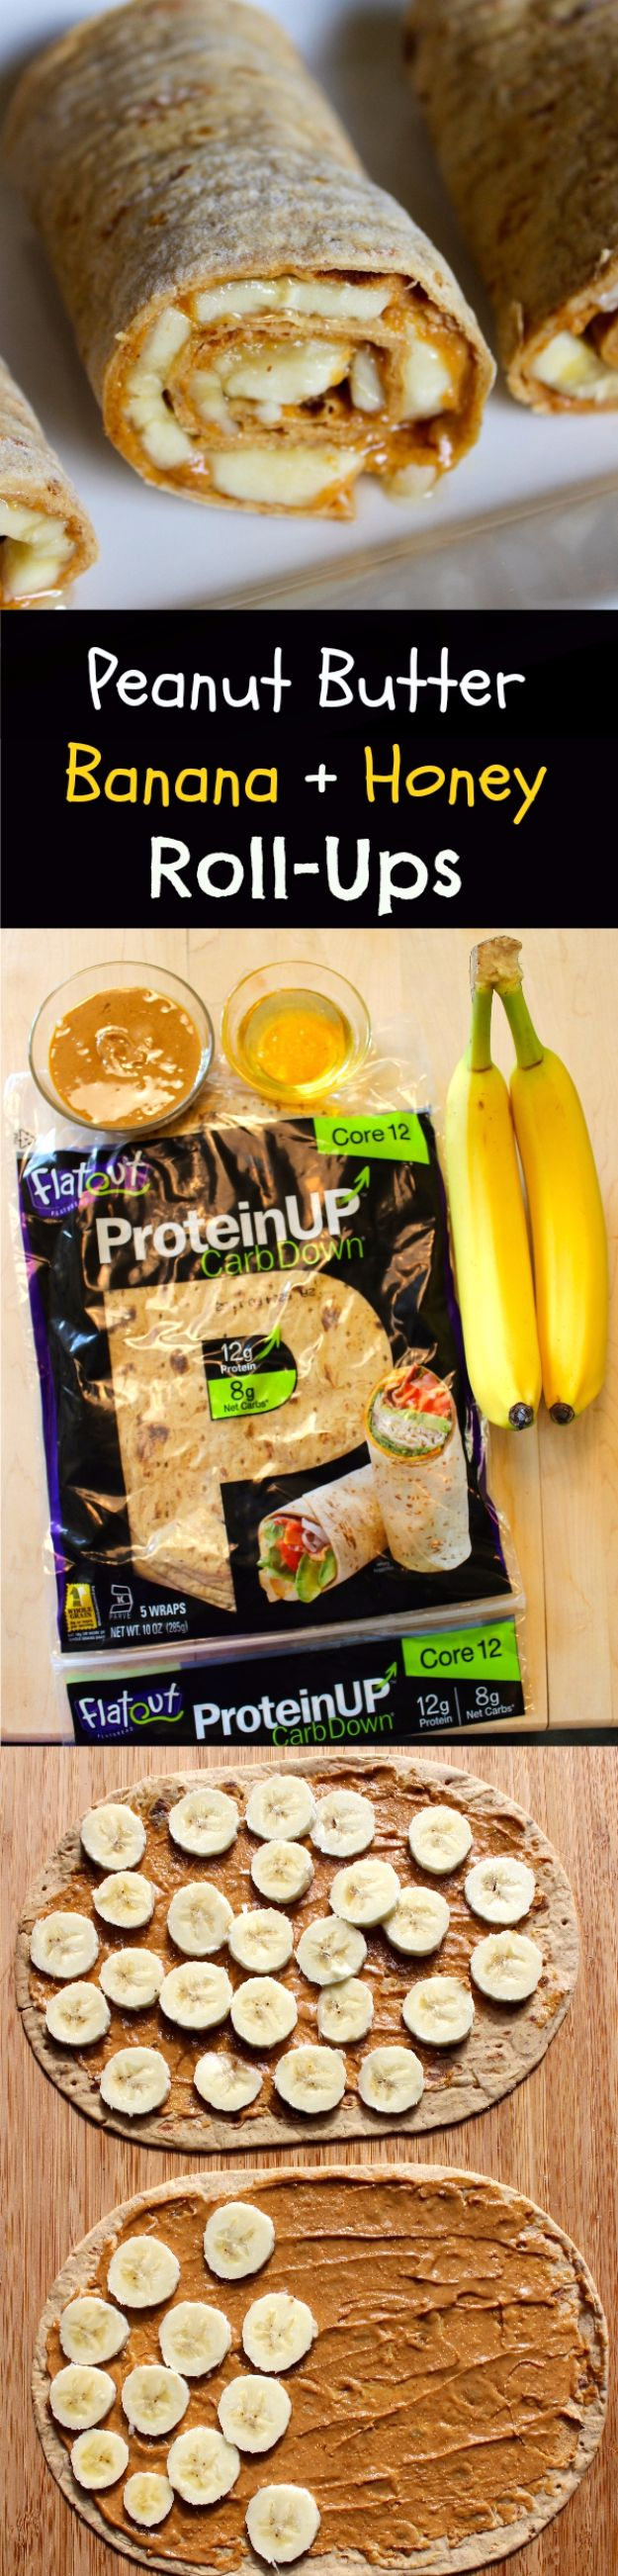 Easy Snacks You Can Make In Minutes - Peanut Butter Banana + Honey Roll Ups - Quick Recipes and Tricks for Making After Workout and After School Snack - Fast Ideas for Instant Small Meals and Treats - No Bake, Microwave and Simple Prep Makes Snacking Fun #snacks #recipes